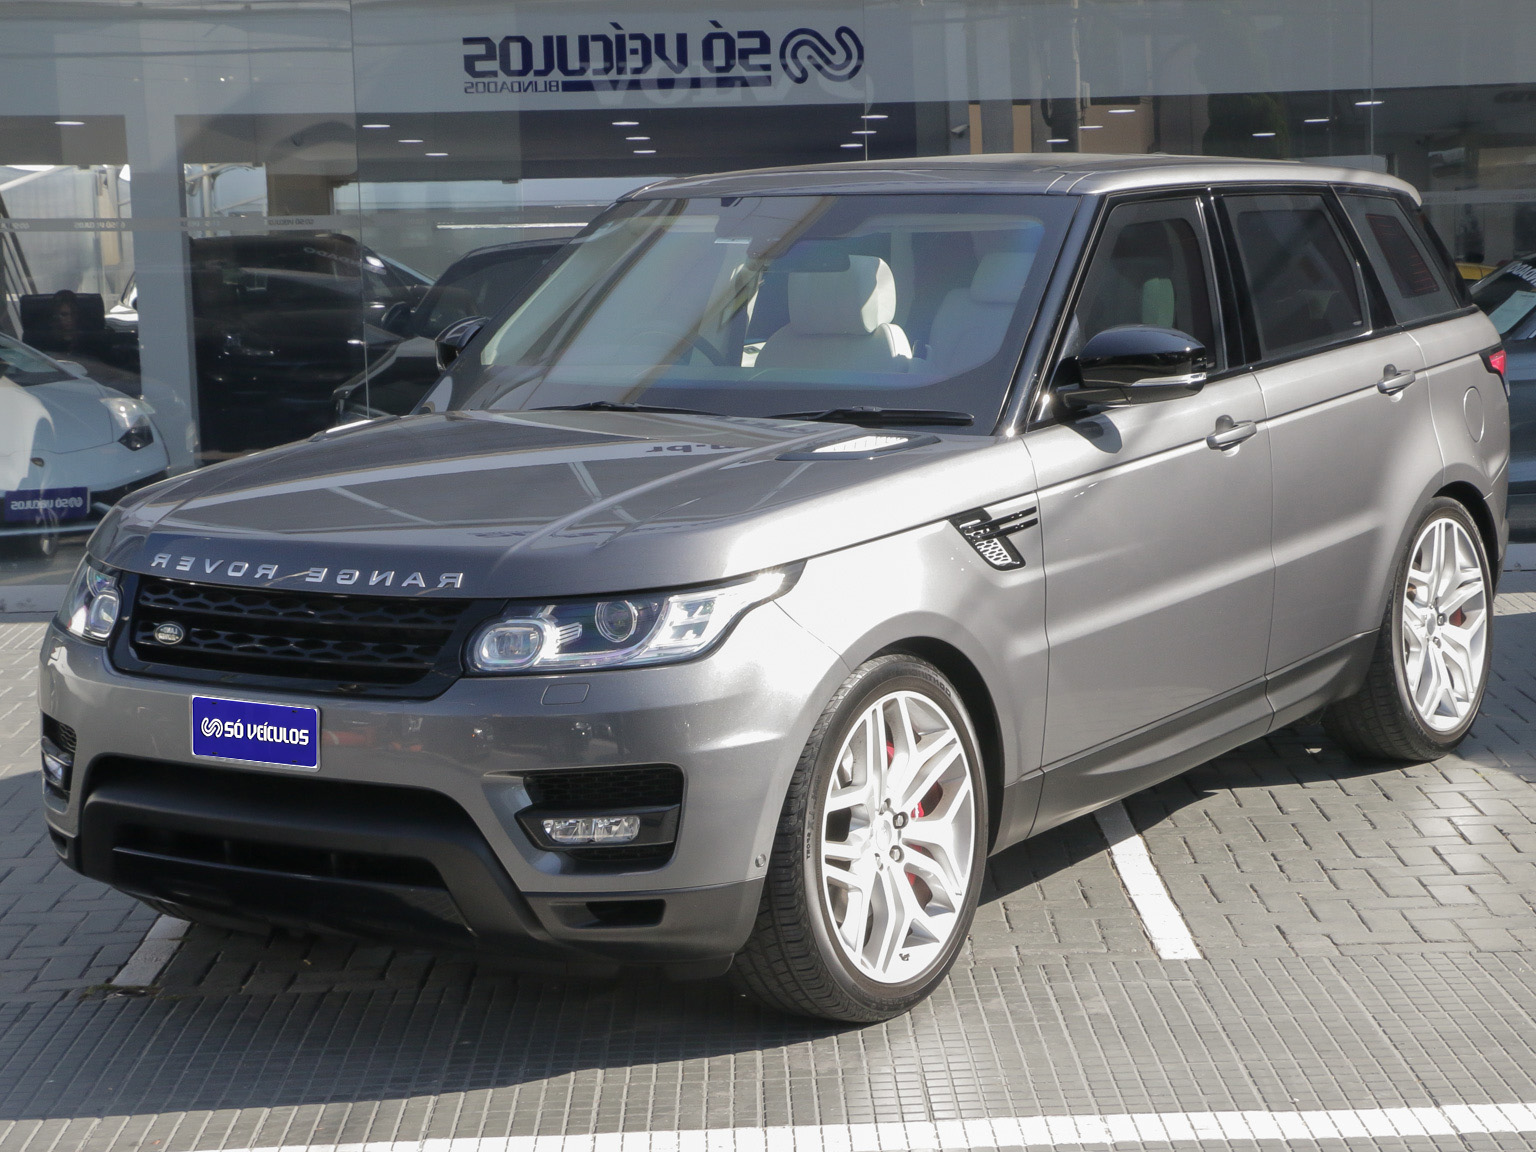 Range Rover Sport HSE Autobiography